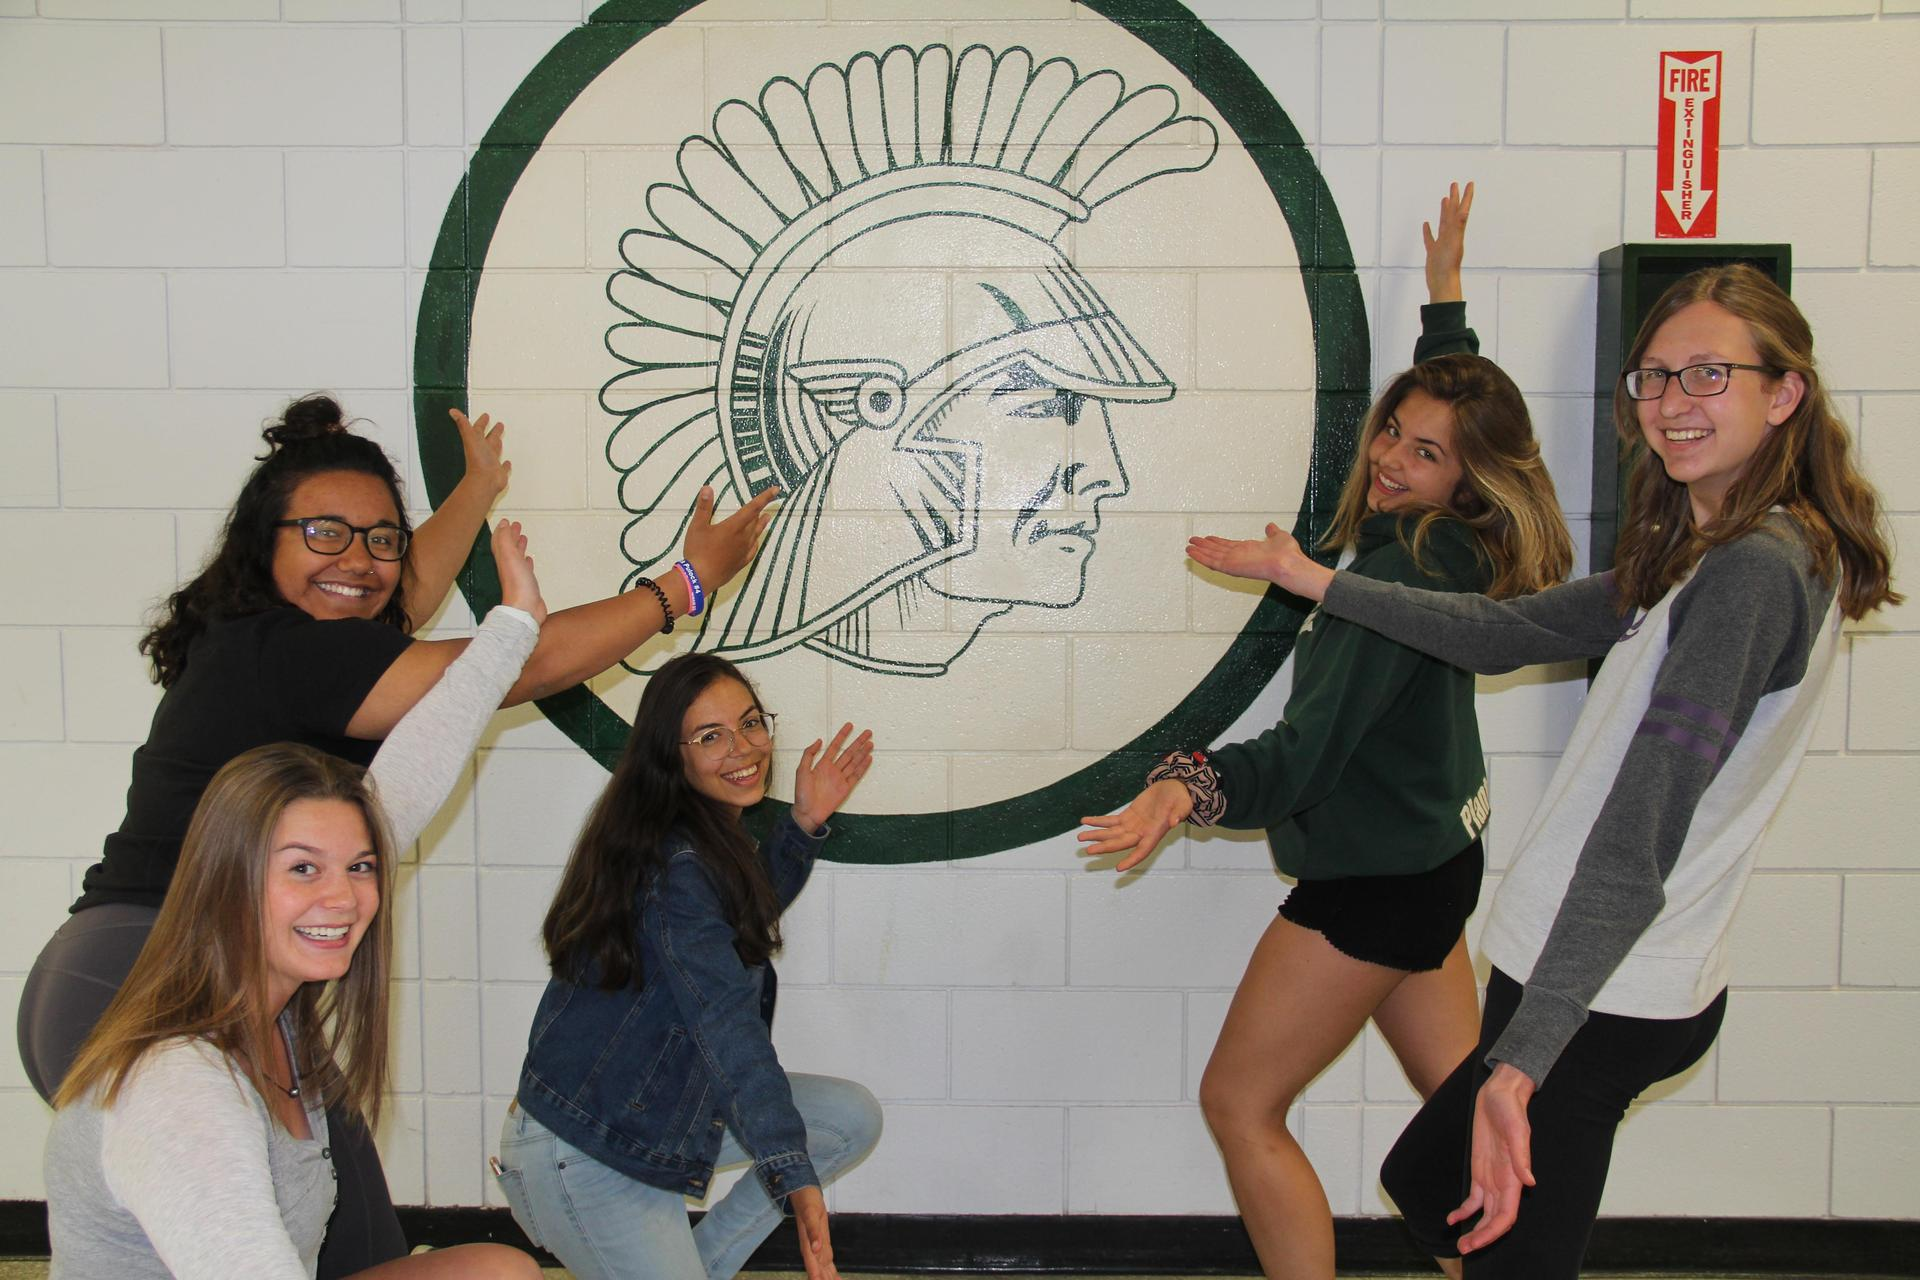 Students showing off the Spartans wall emblem